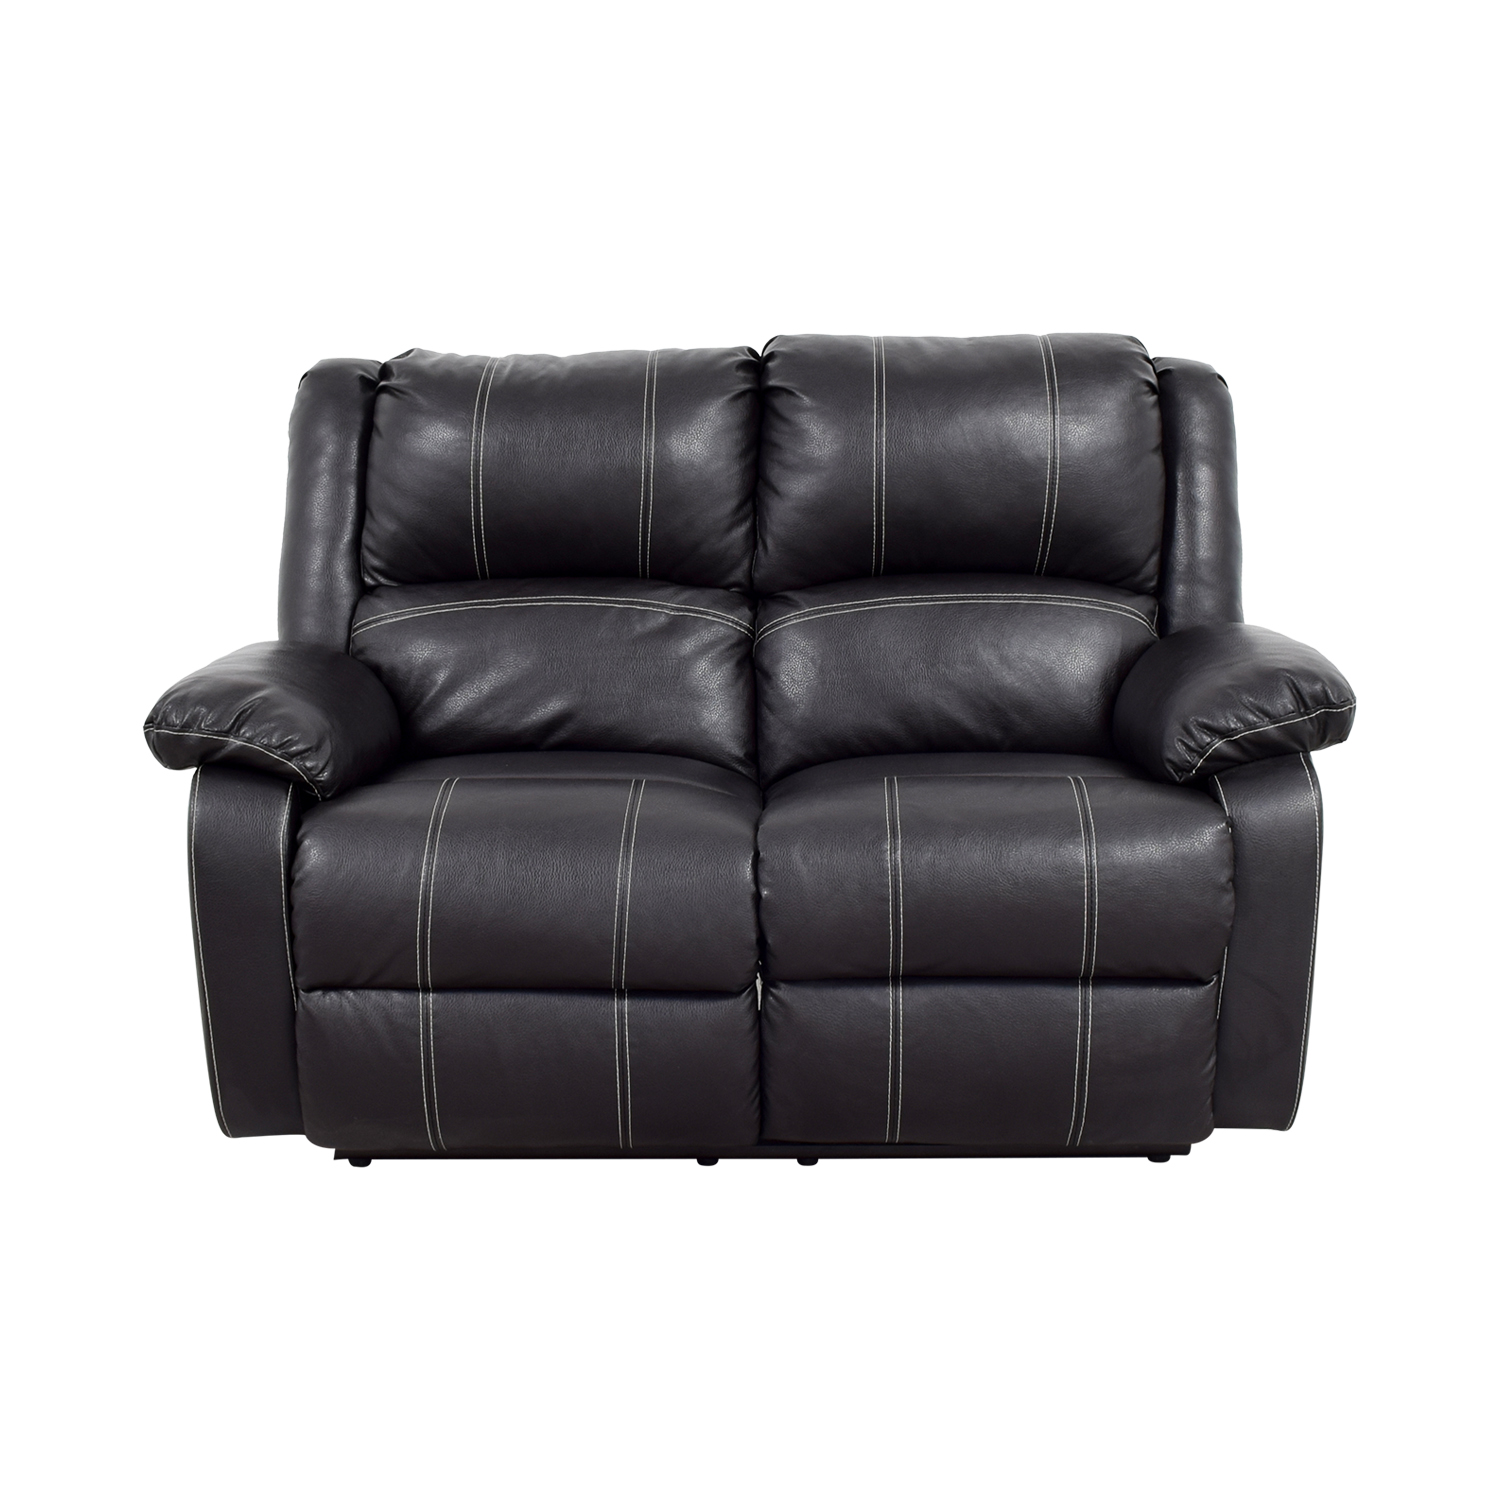 Leather Loveseat Black Leather Reclining Sofa Awesome Home